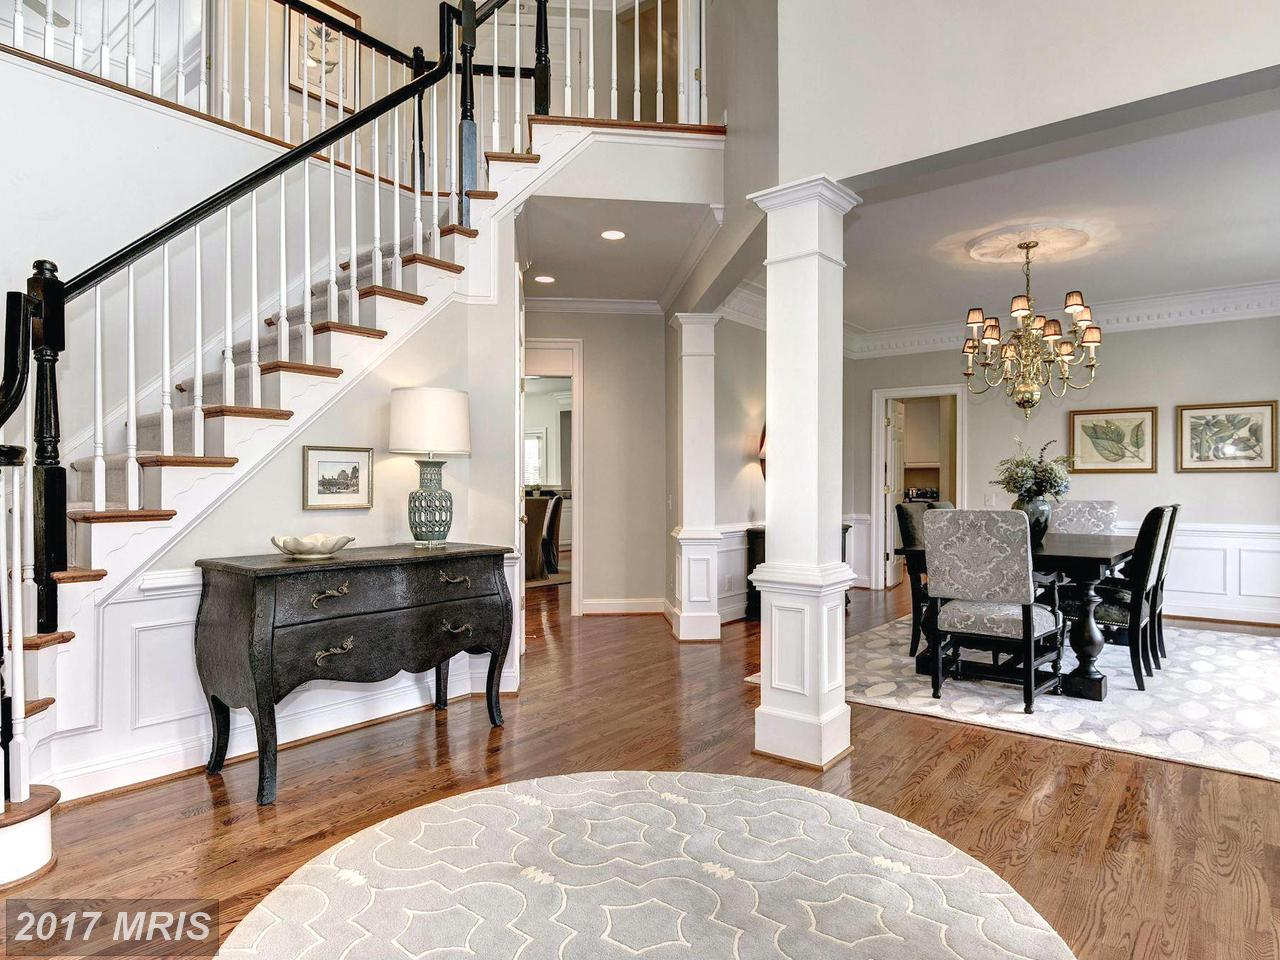 Additional photo for property listing at Colonial, Detached - MCLEAN, VA 1423 MAYHURST BLVD McLean, Virginia,22102 Hoa Kỳ